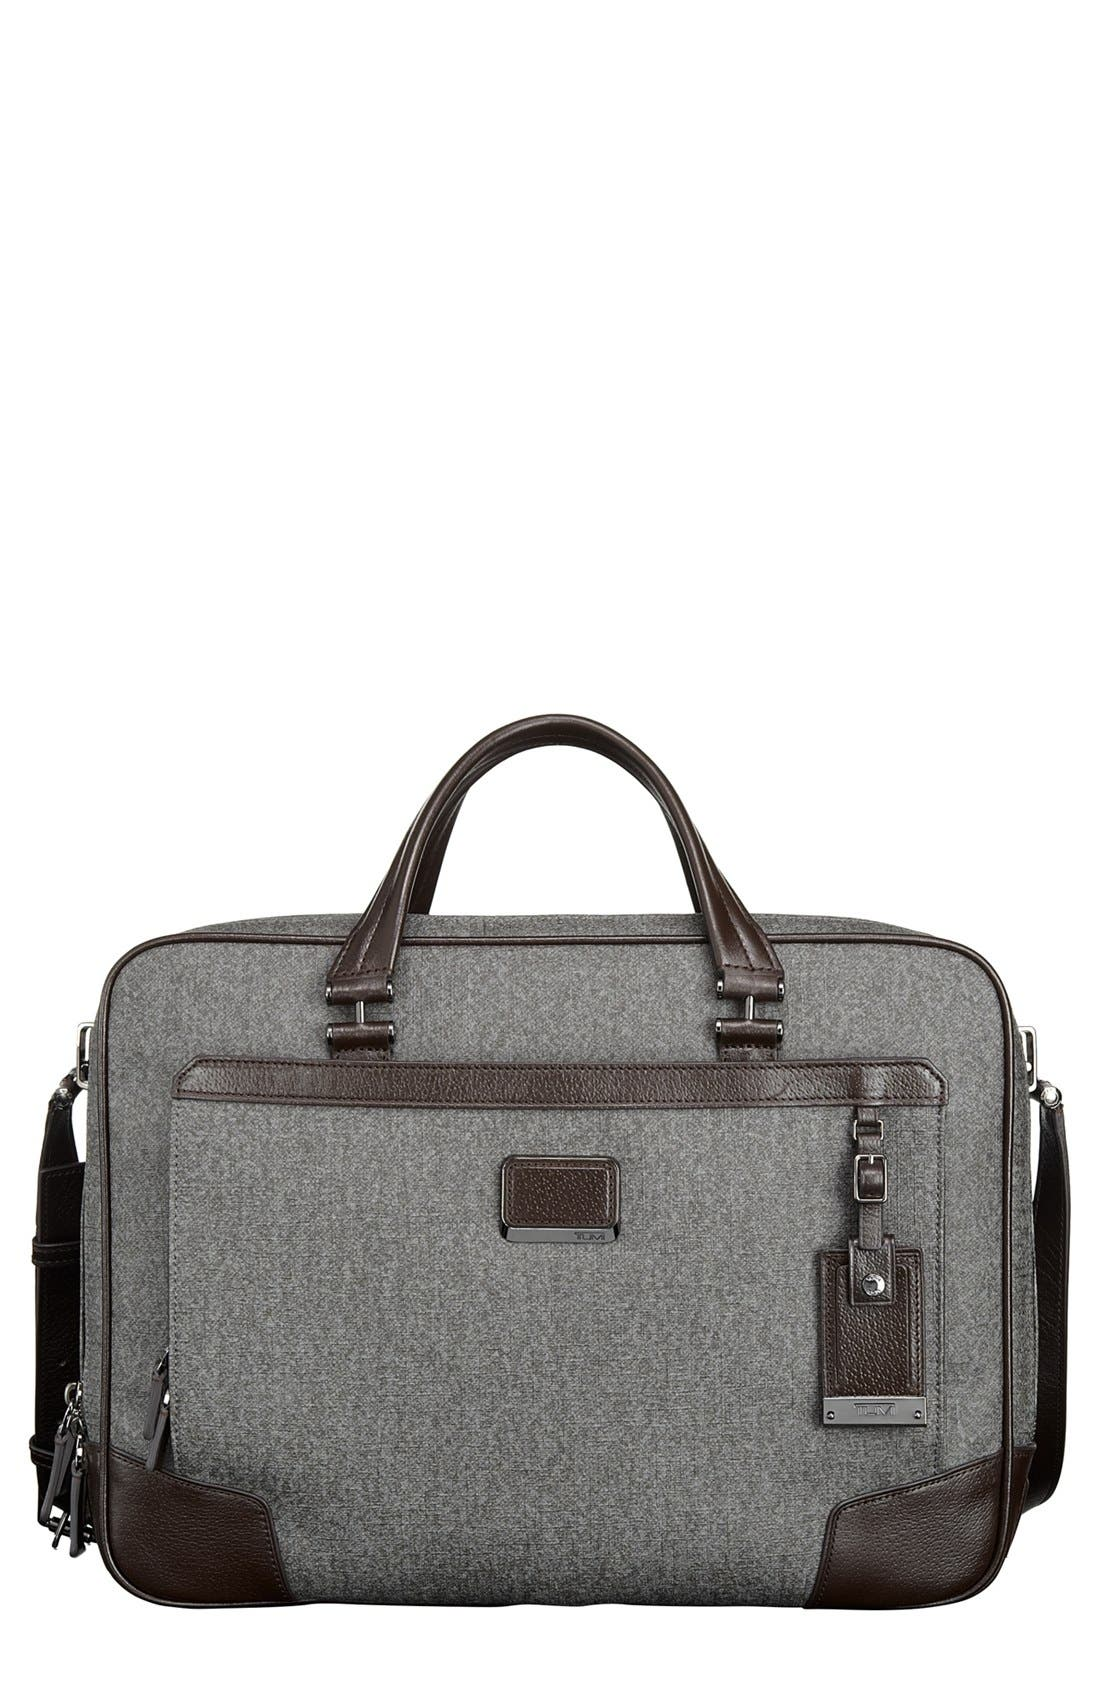 'Astor Ansonia' Zip Top Coated Canvas Laptop Briefcase, Main, color, 068